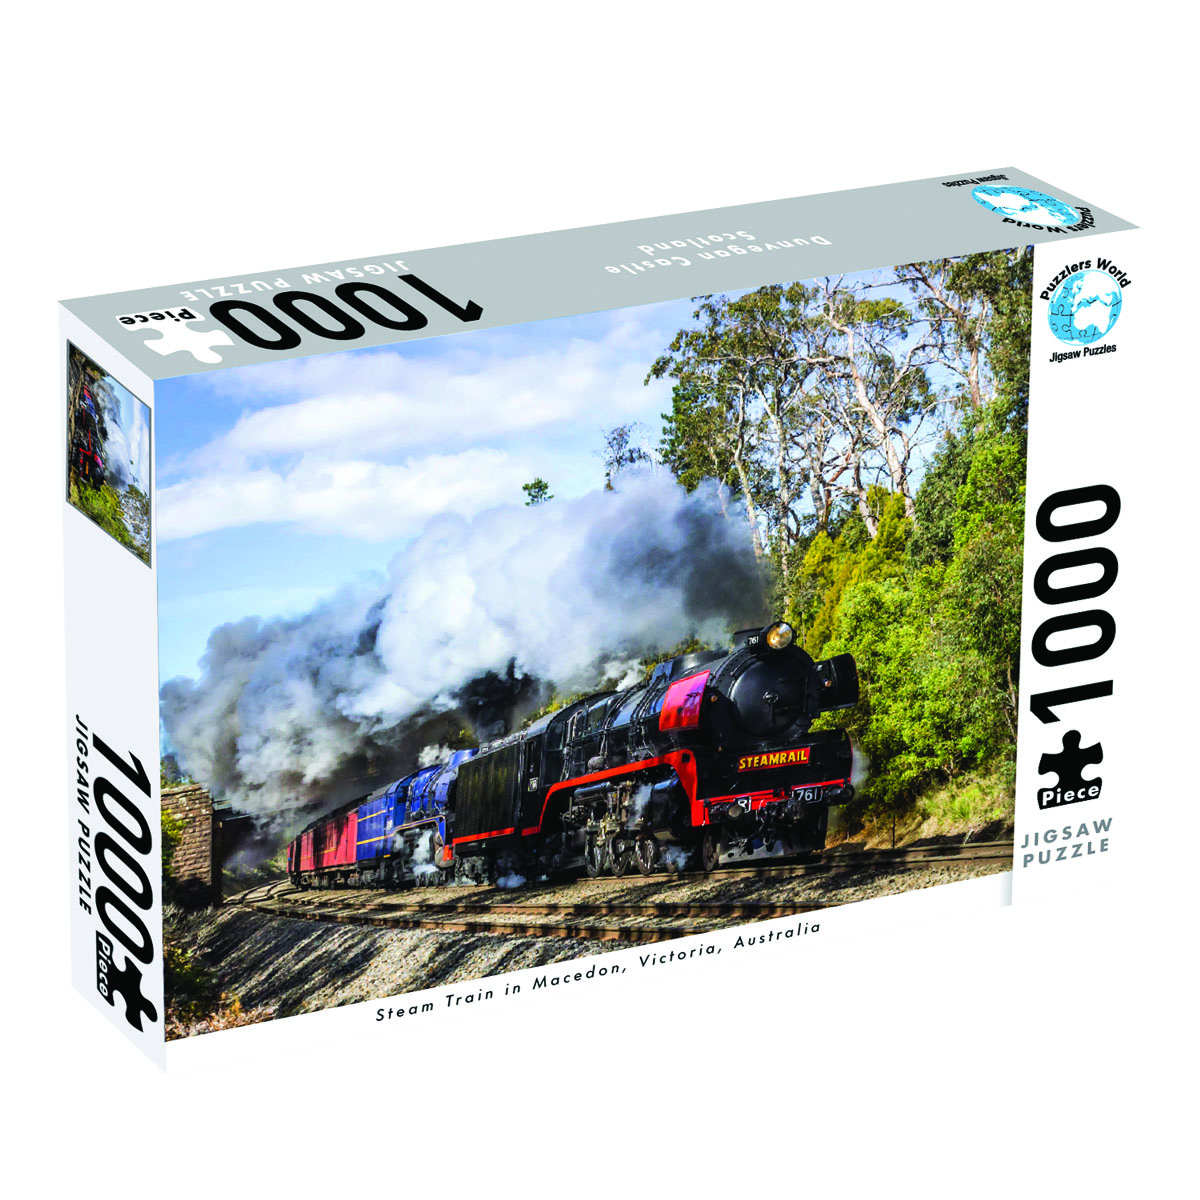 Puzzlers World ~ Artistic Jigsaw 1000pc Puzzle ~ Steam Train in Macedon Victoria